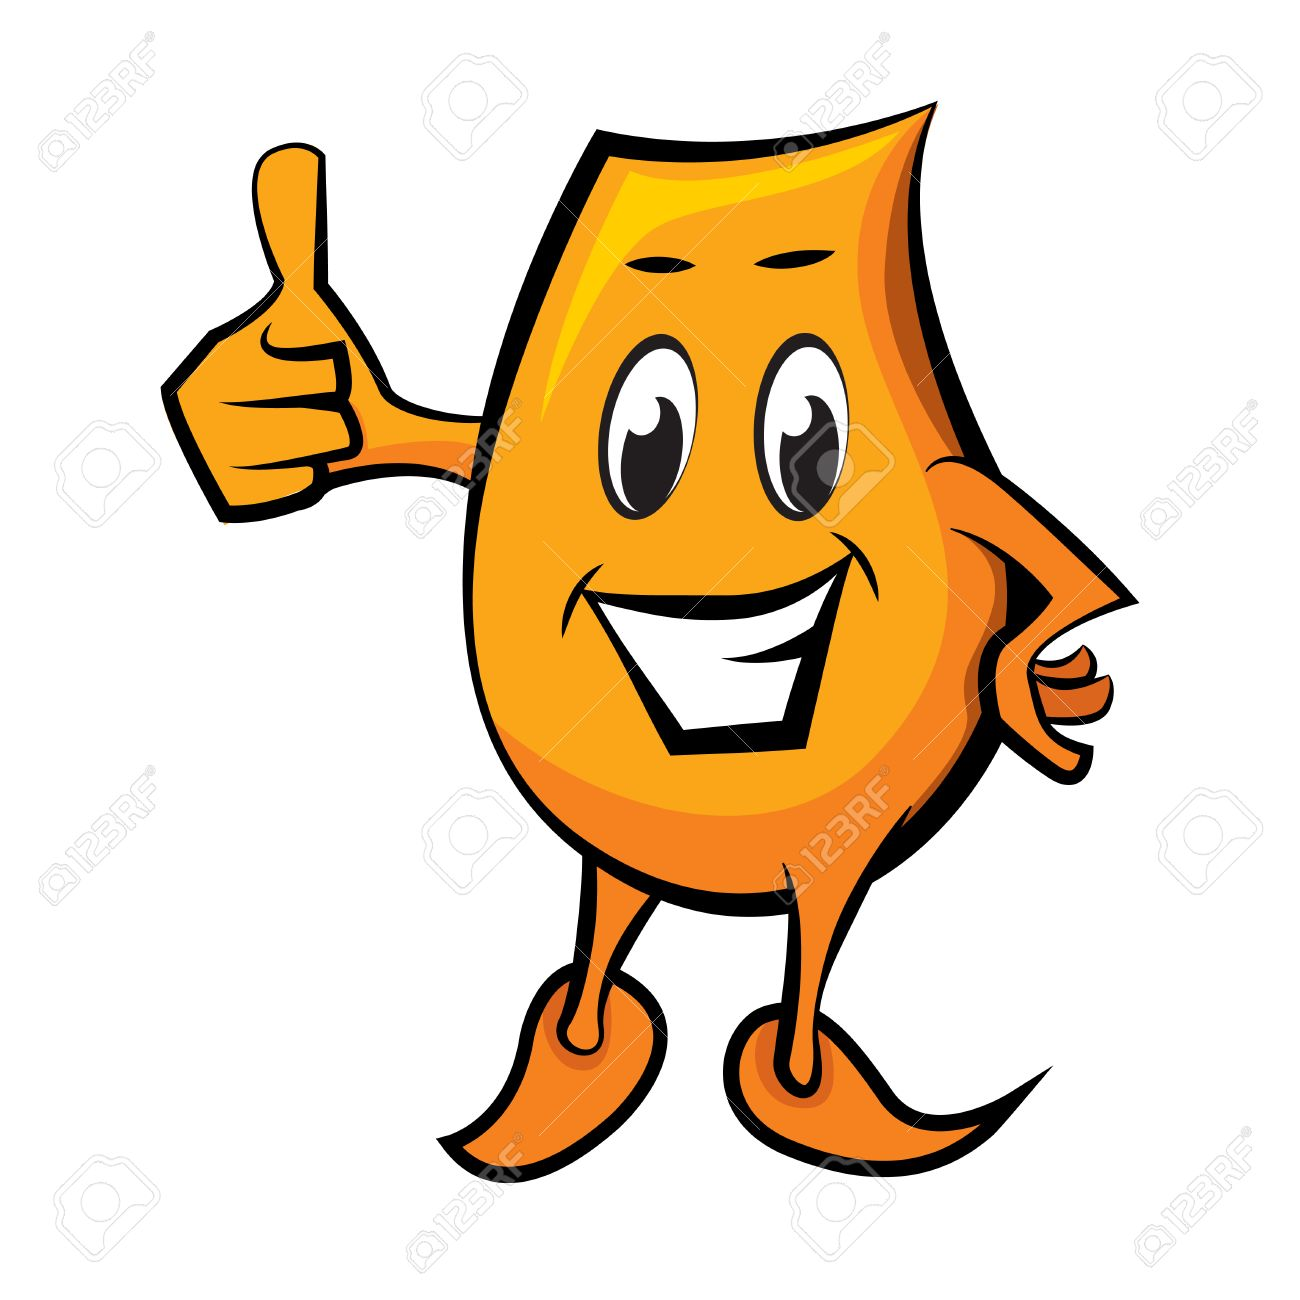 Cartoon character Blinky with thumbs up Stock Vector - 8650035